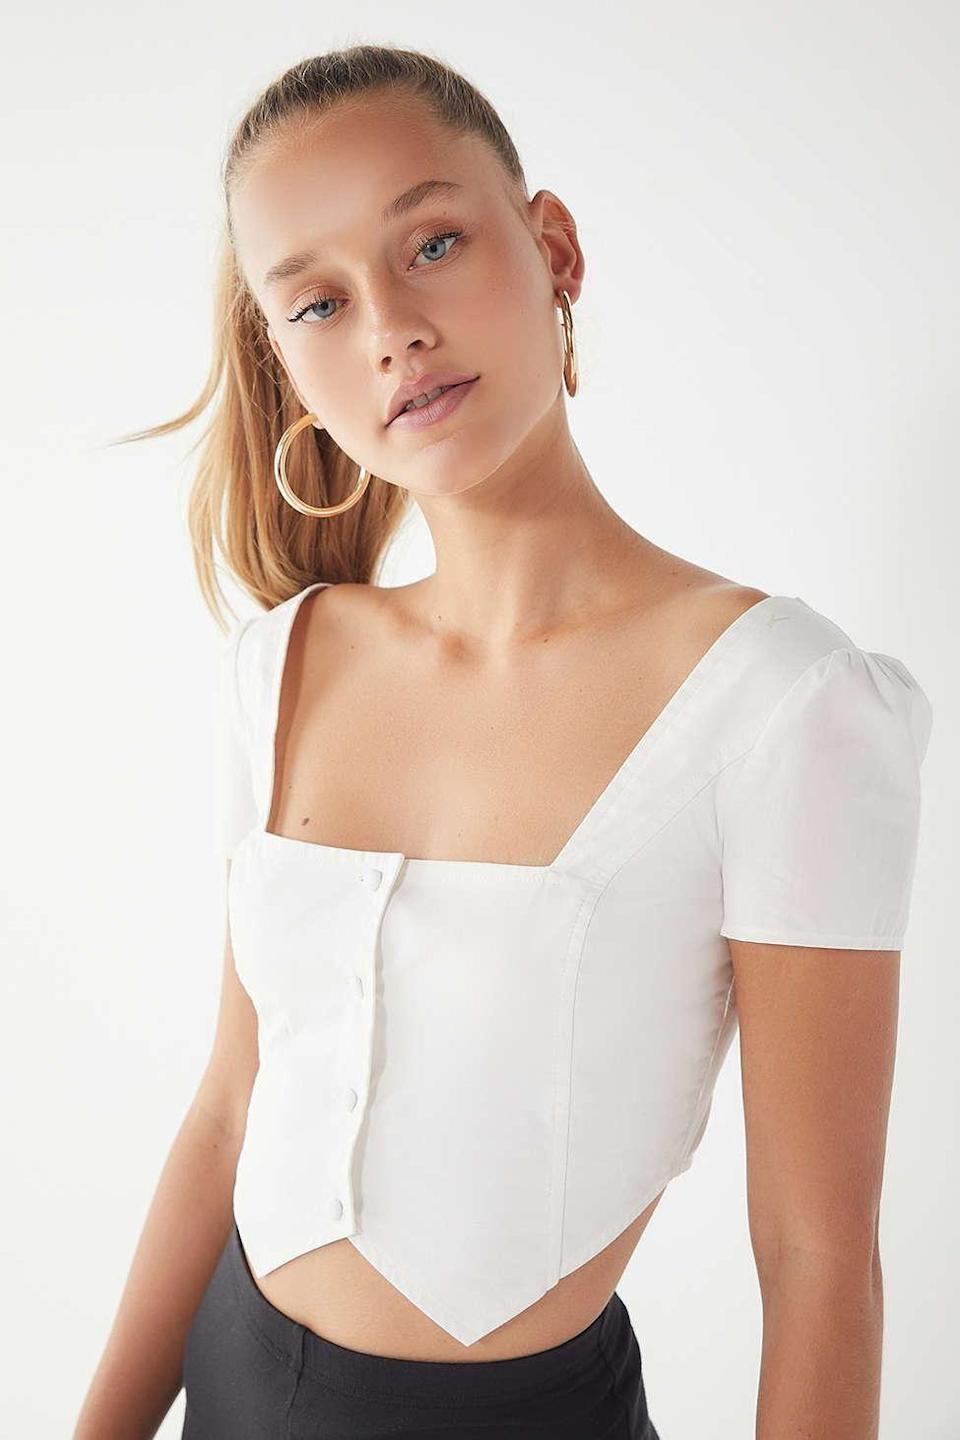 Romantic, but not too girly. Available in sizes XS to L.